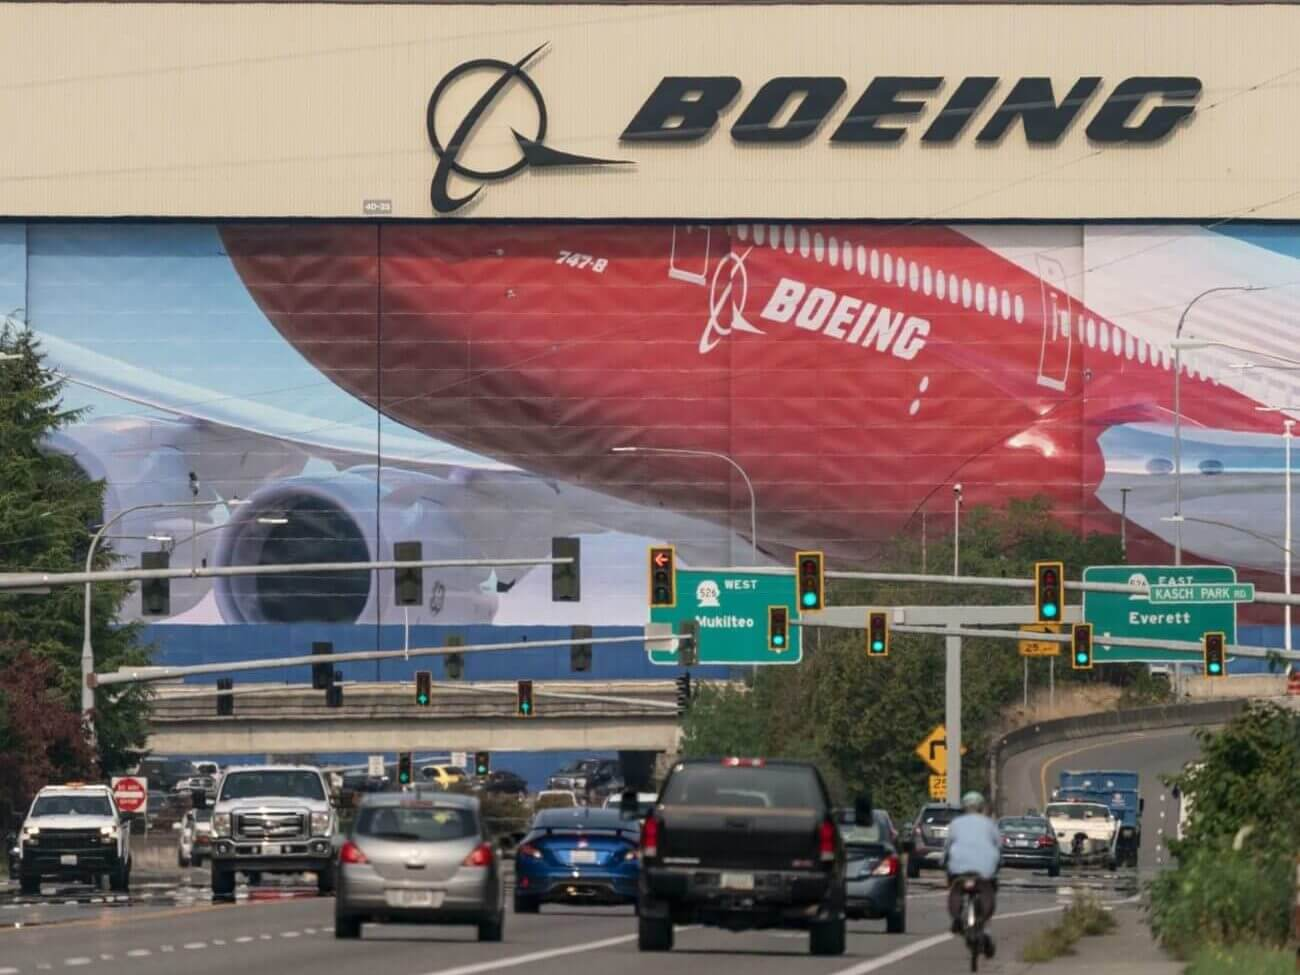 Boeing Is the Latest Firm to Fracture out a Antagonistic Enterprise Atmosphere